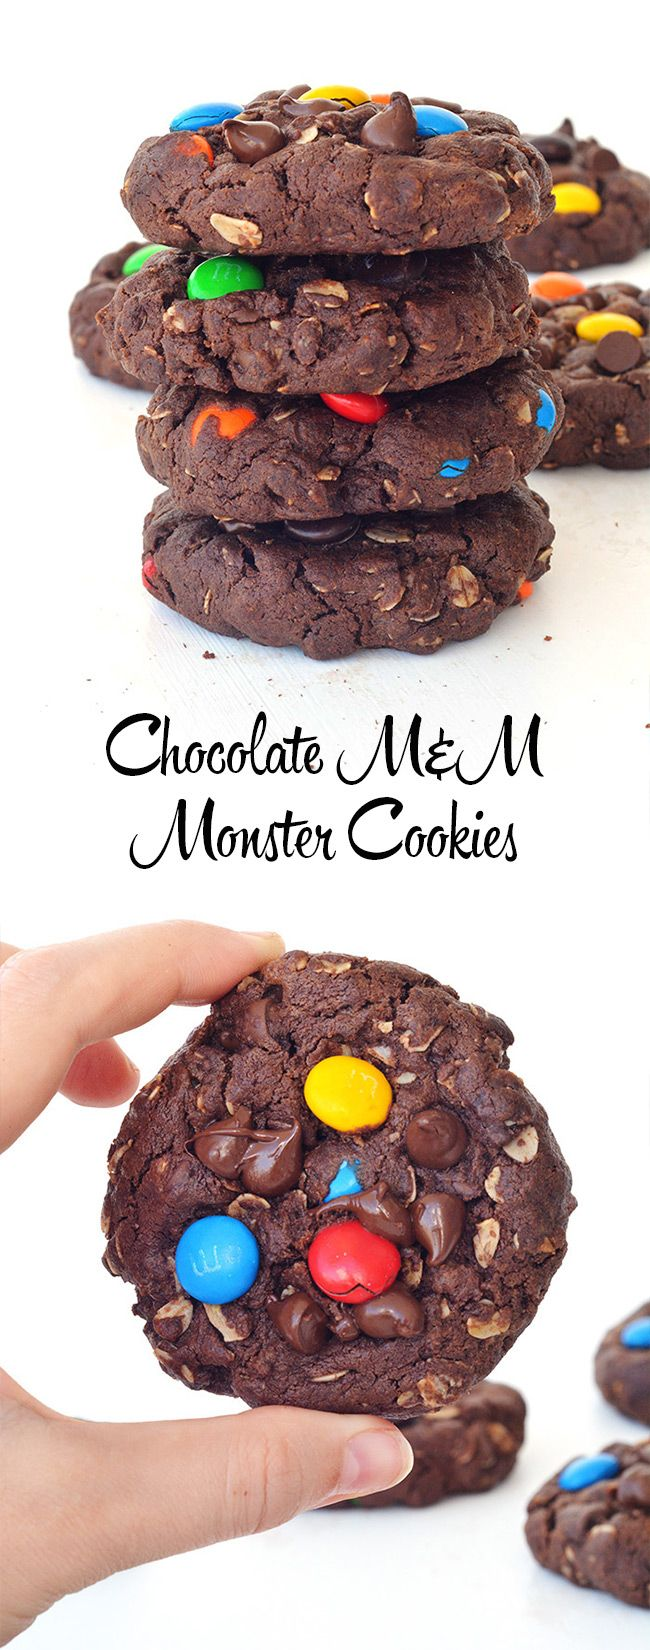 Everyone loves Monster Cookies. Add a little pizzazz the next time you make them with this recipe for Chocolate M&M'S Monster Cookies!